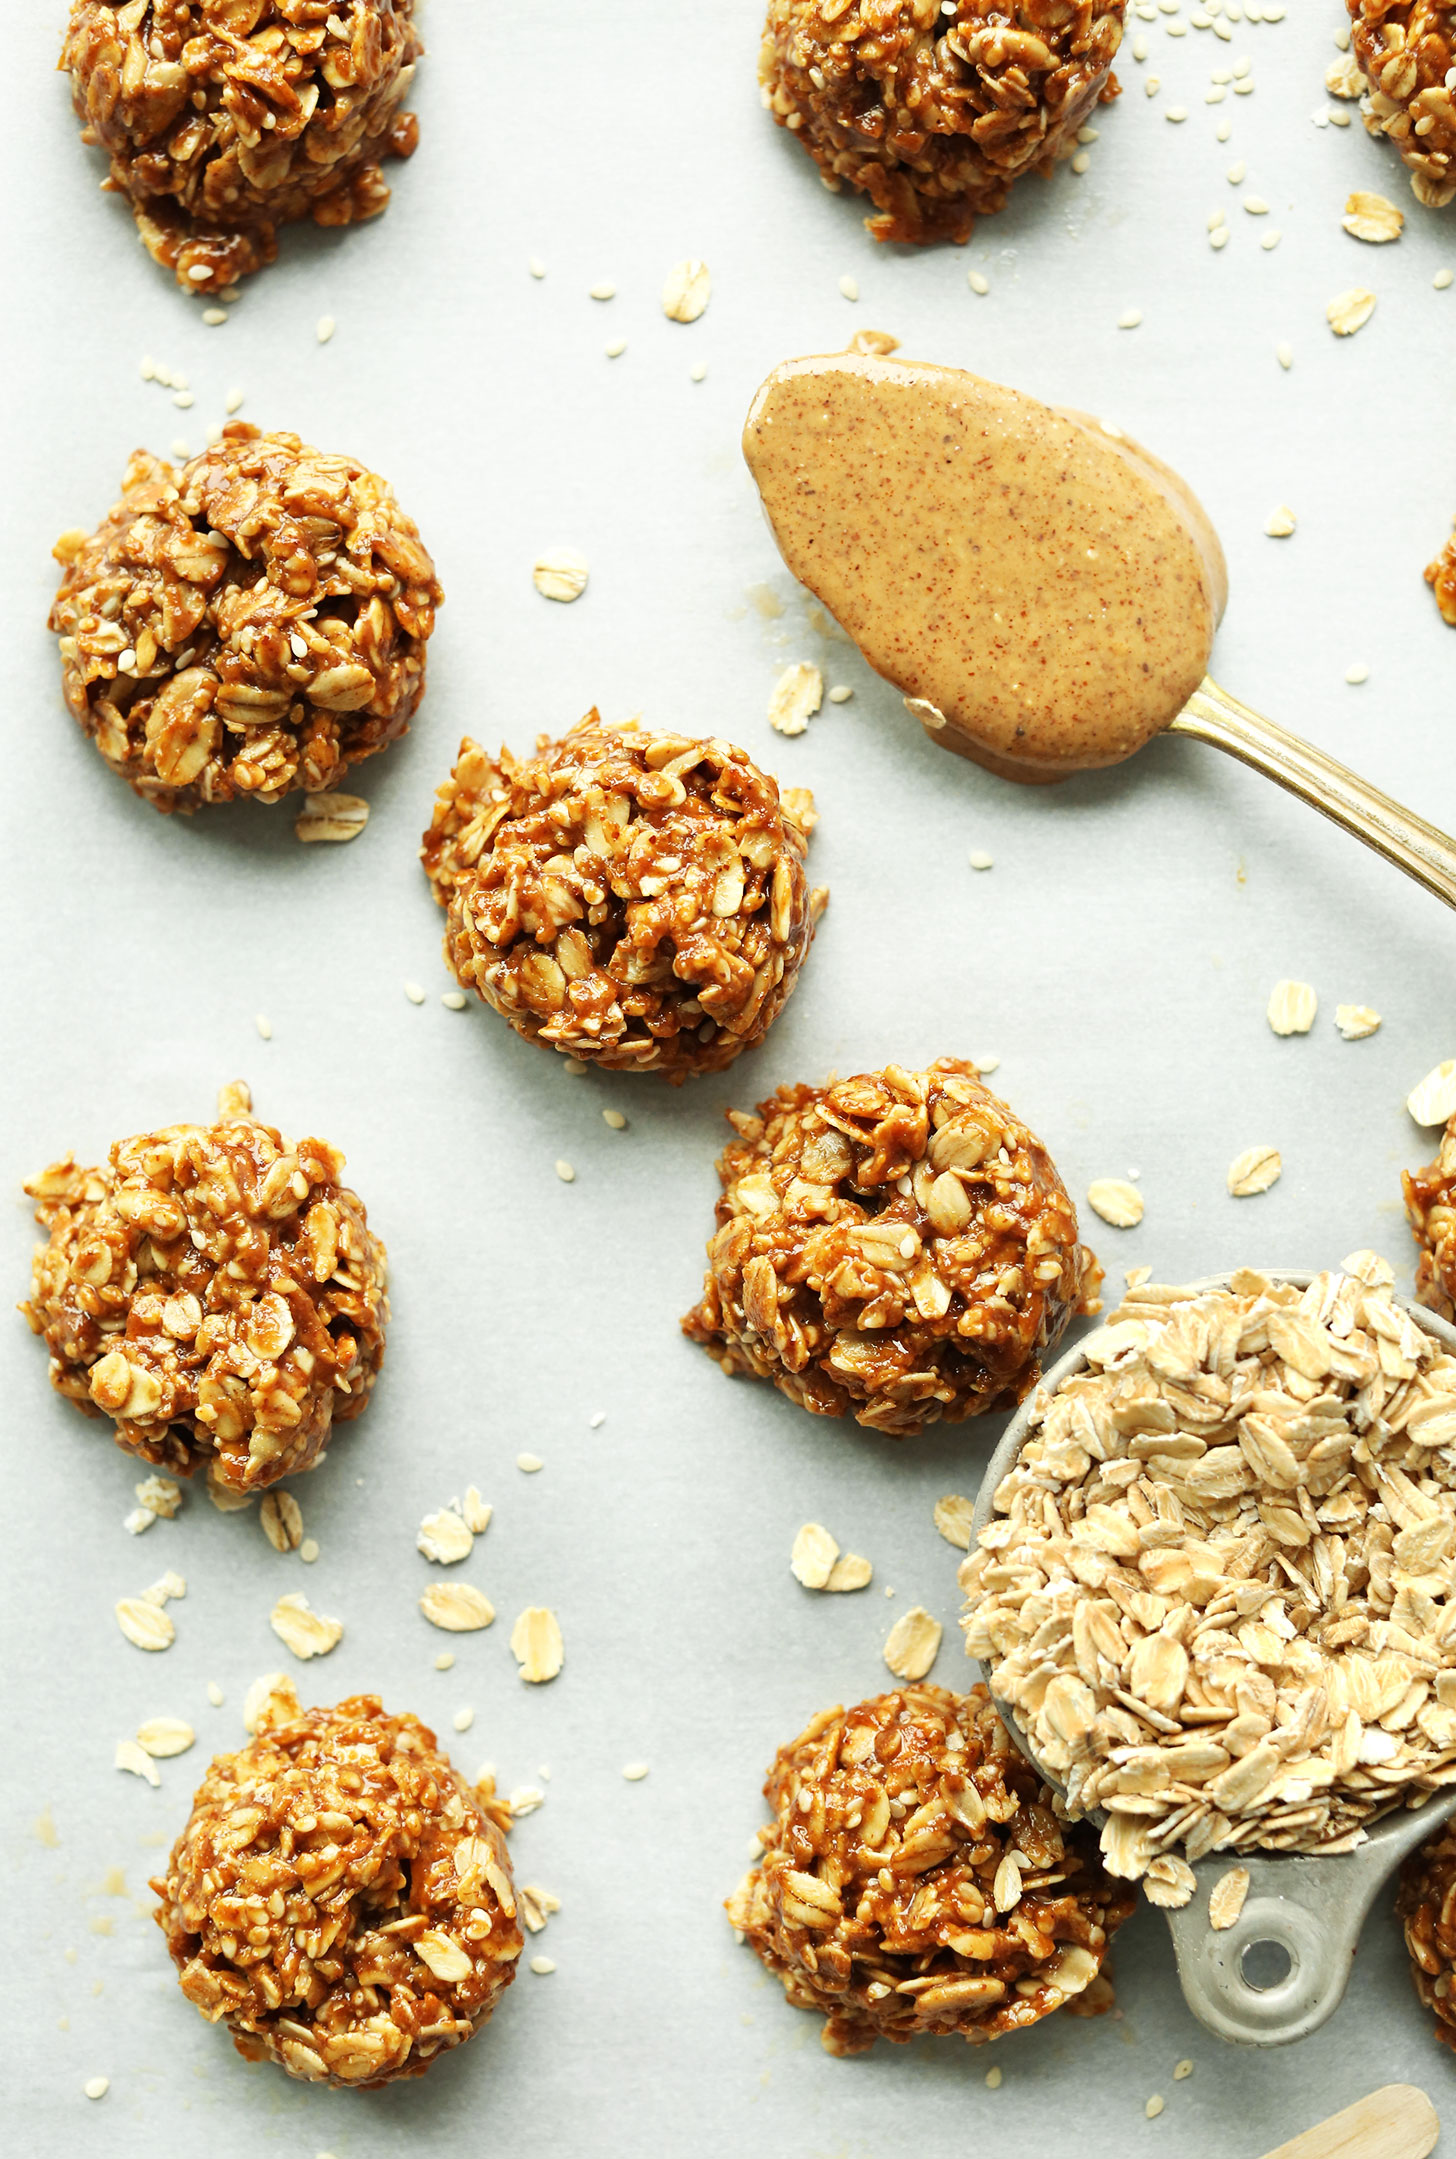 Healthy gluten-free vegan Almond Butter No-Bake Cookies alongside oats and nut butter